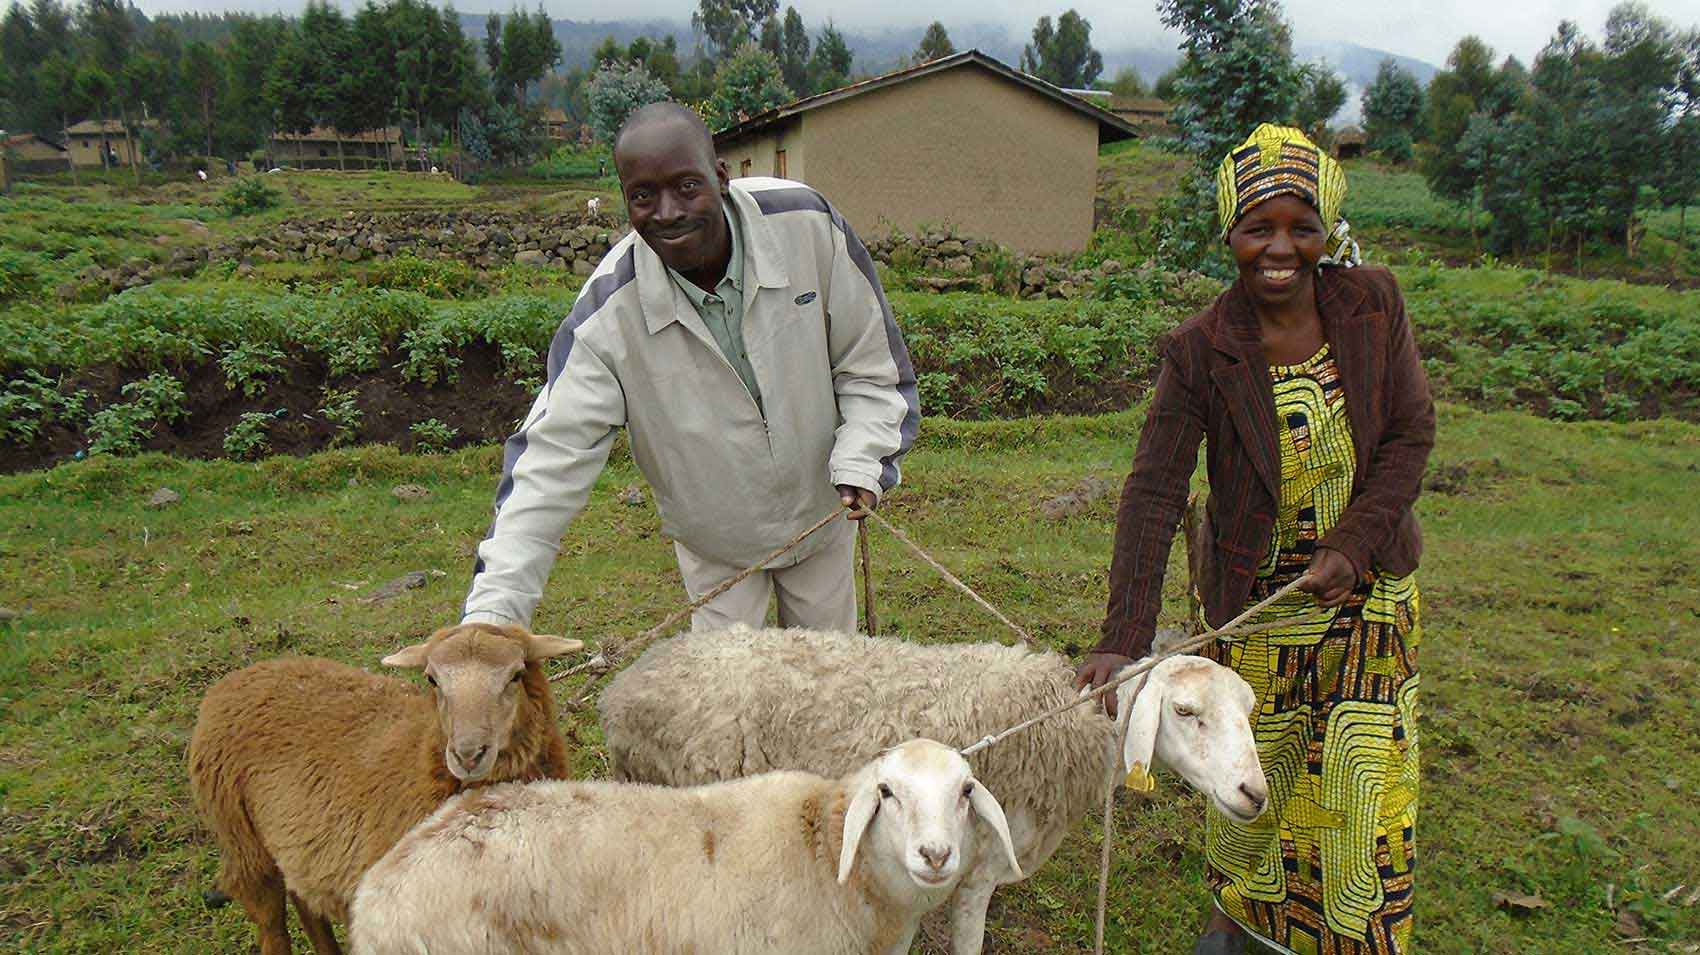 Rural farmers helped by the Pyrethrum farming cooperative program